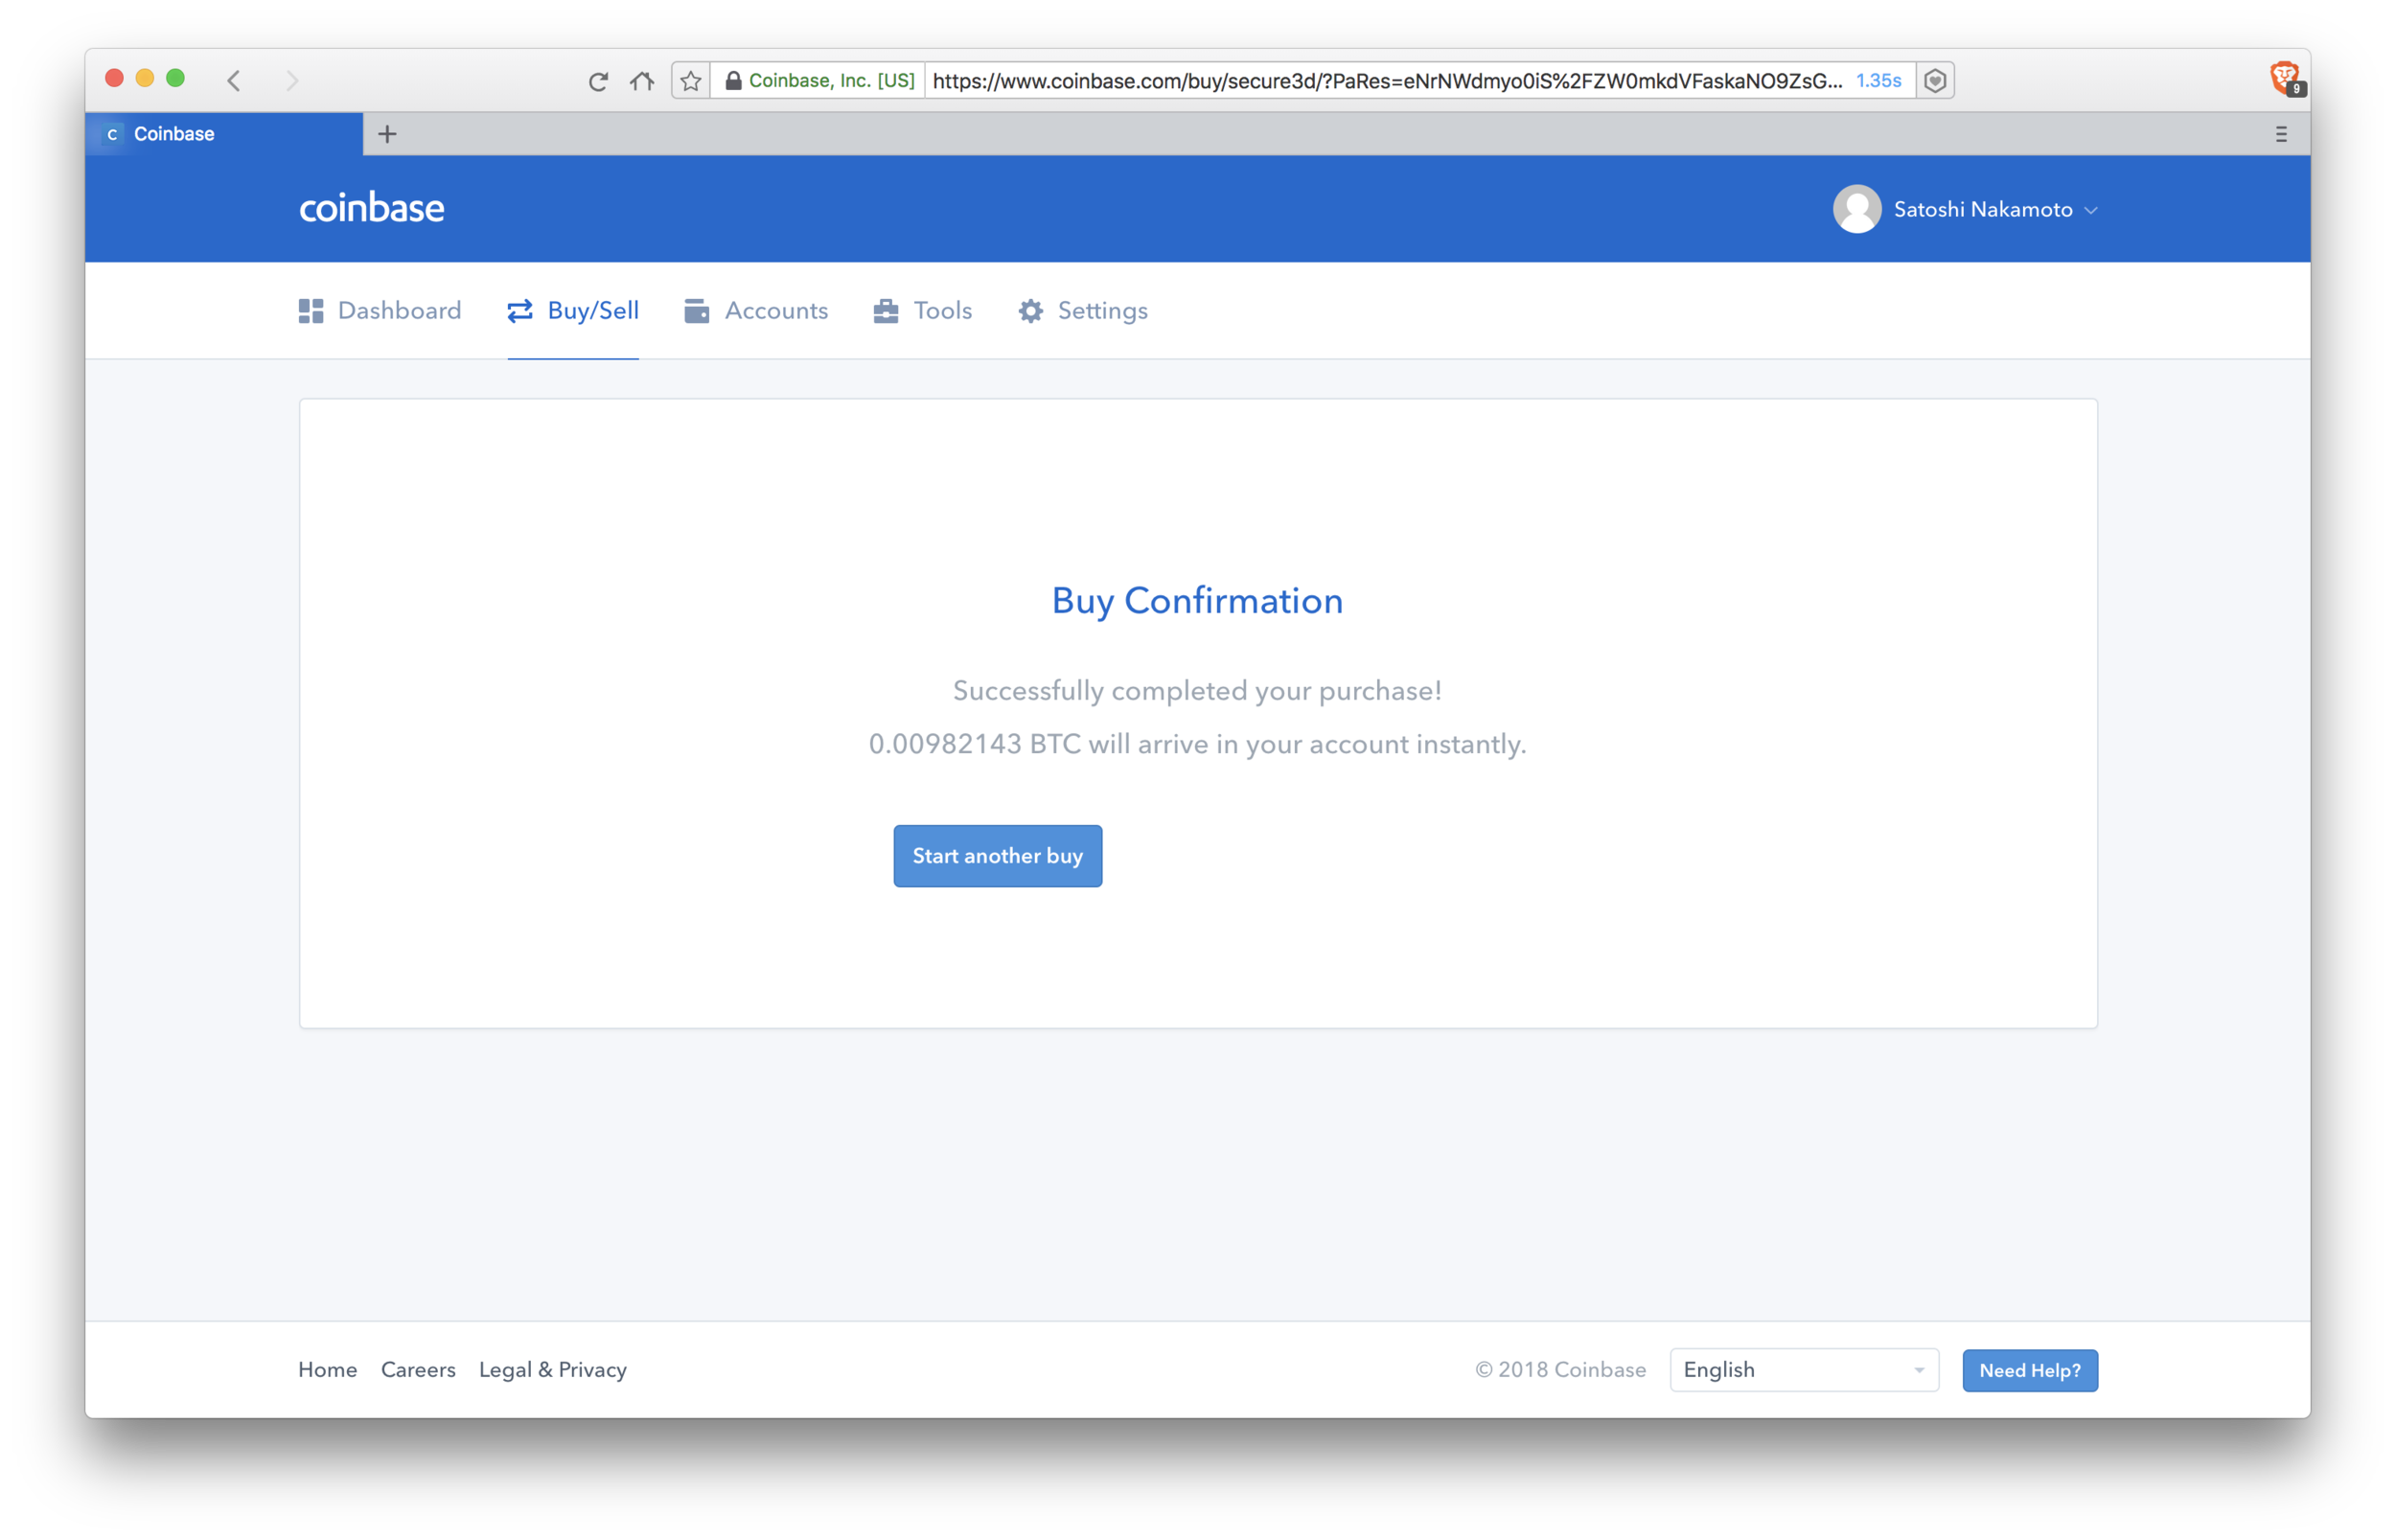 Coinbase: confirmation of buy